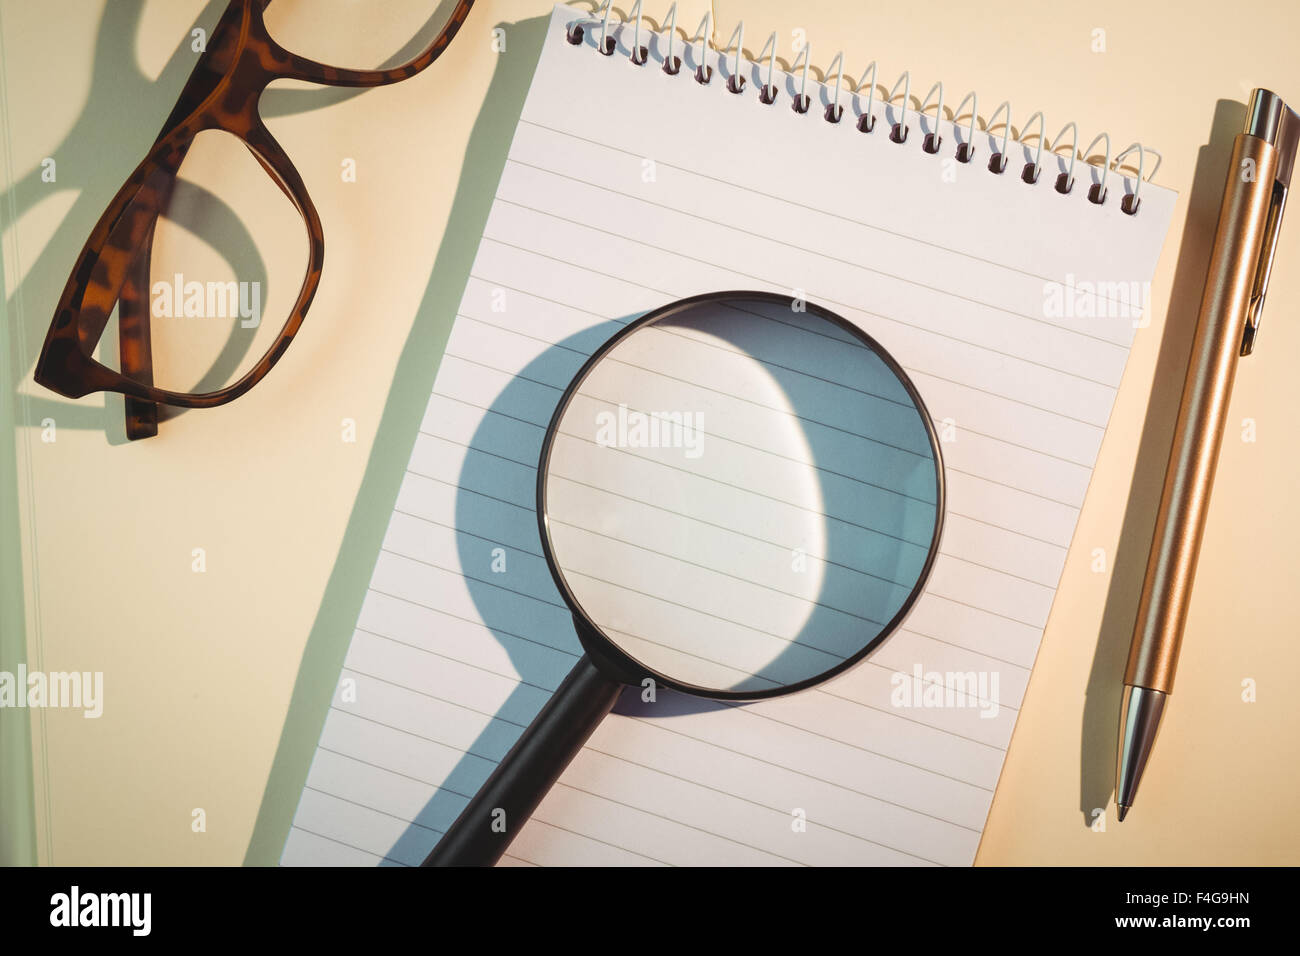 Magnifying glass on notepad amidst pen and eyeglasses - Stock Image